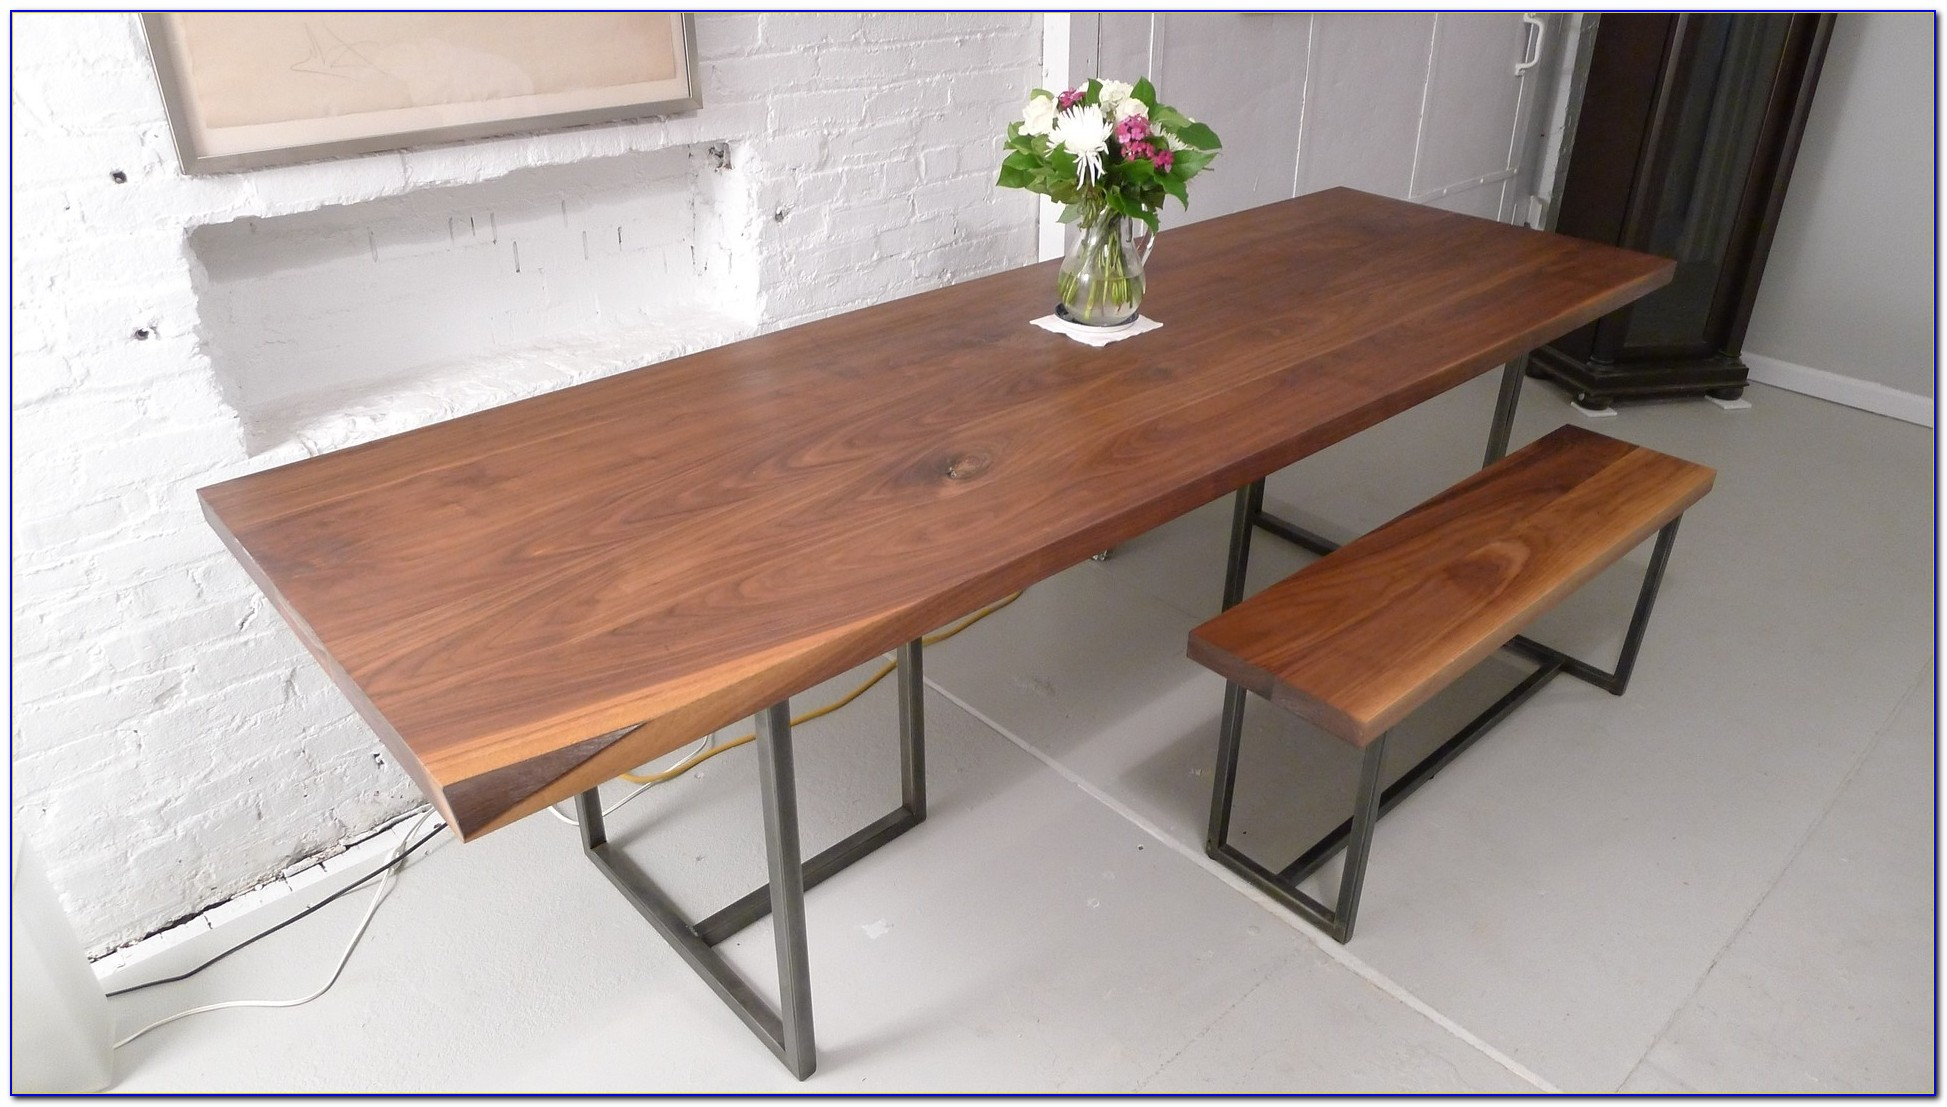 Wooden Dining Room Table With Bench